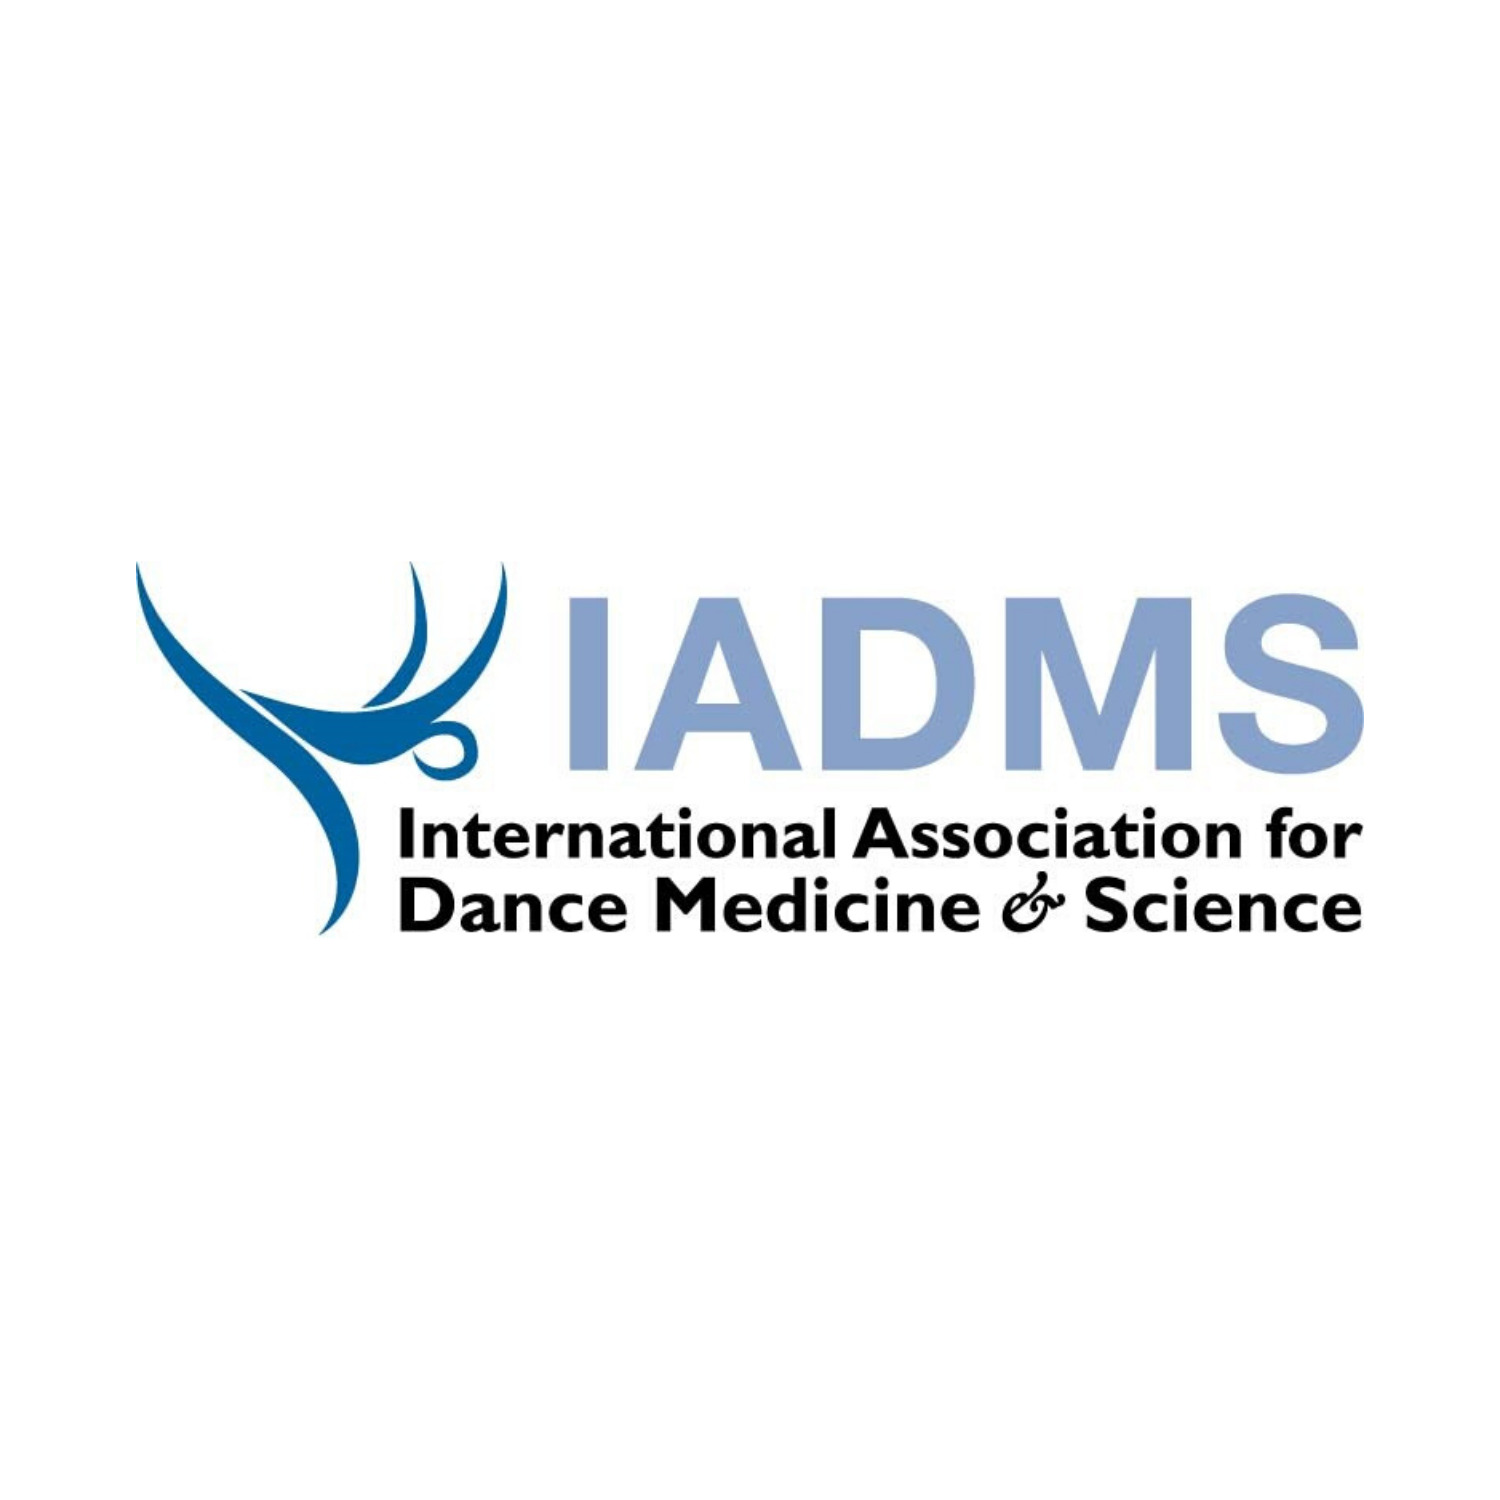 International Association for Dance Medicine & Science